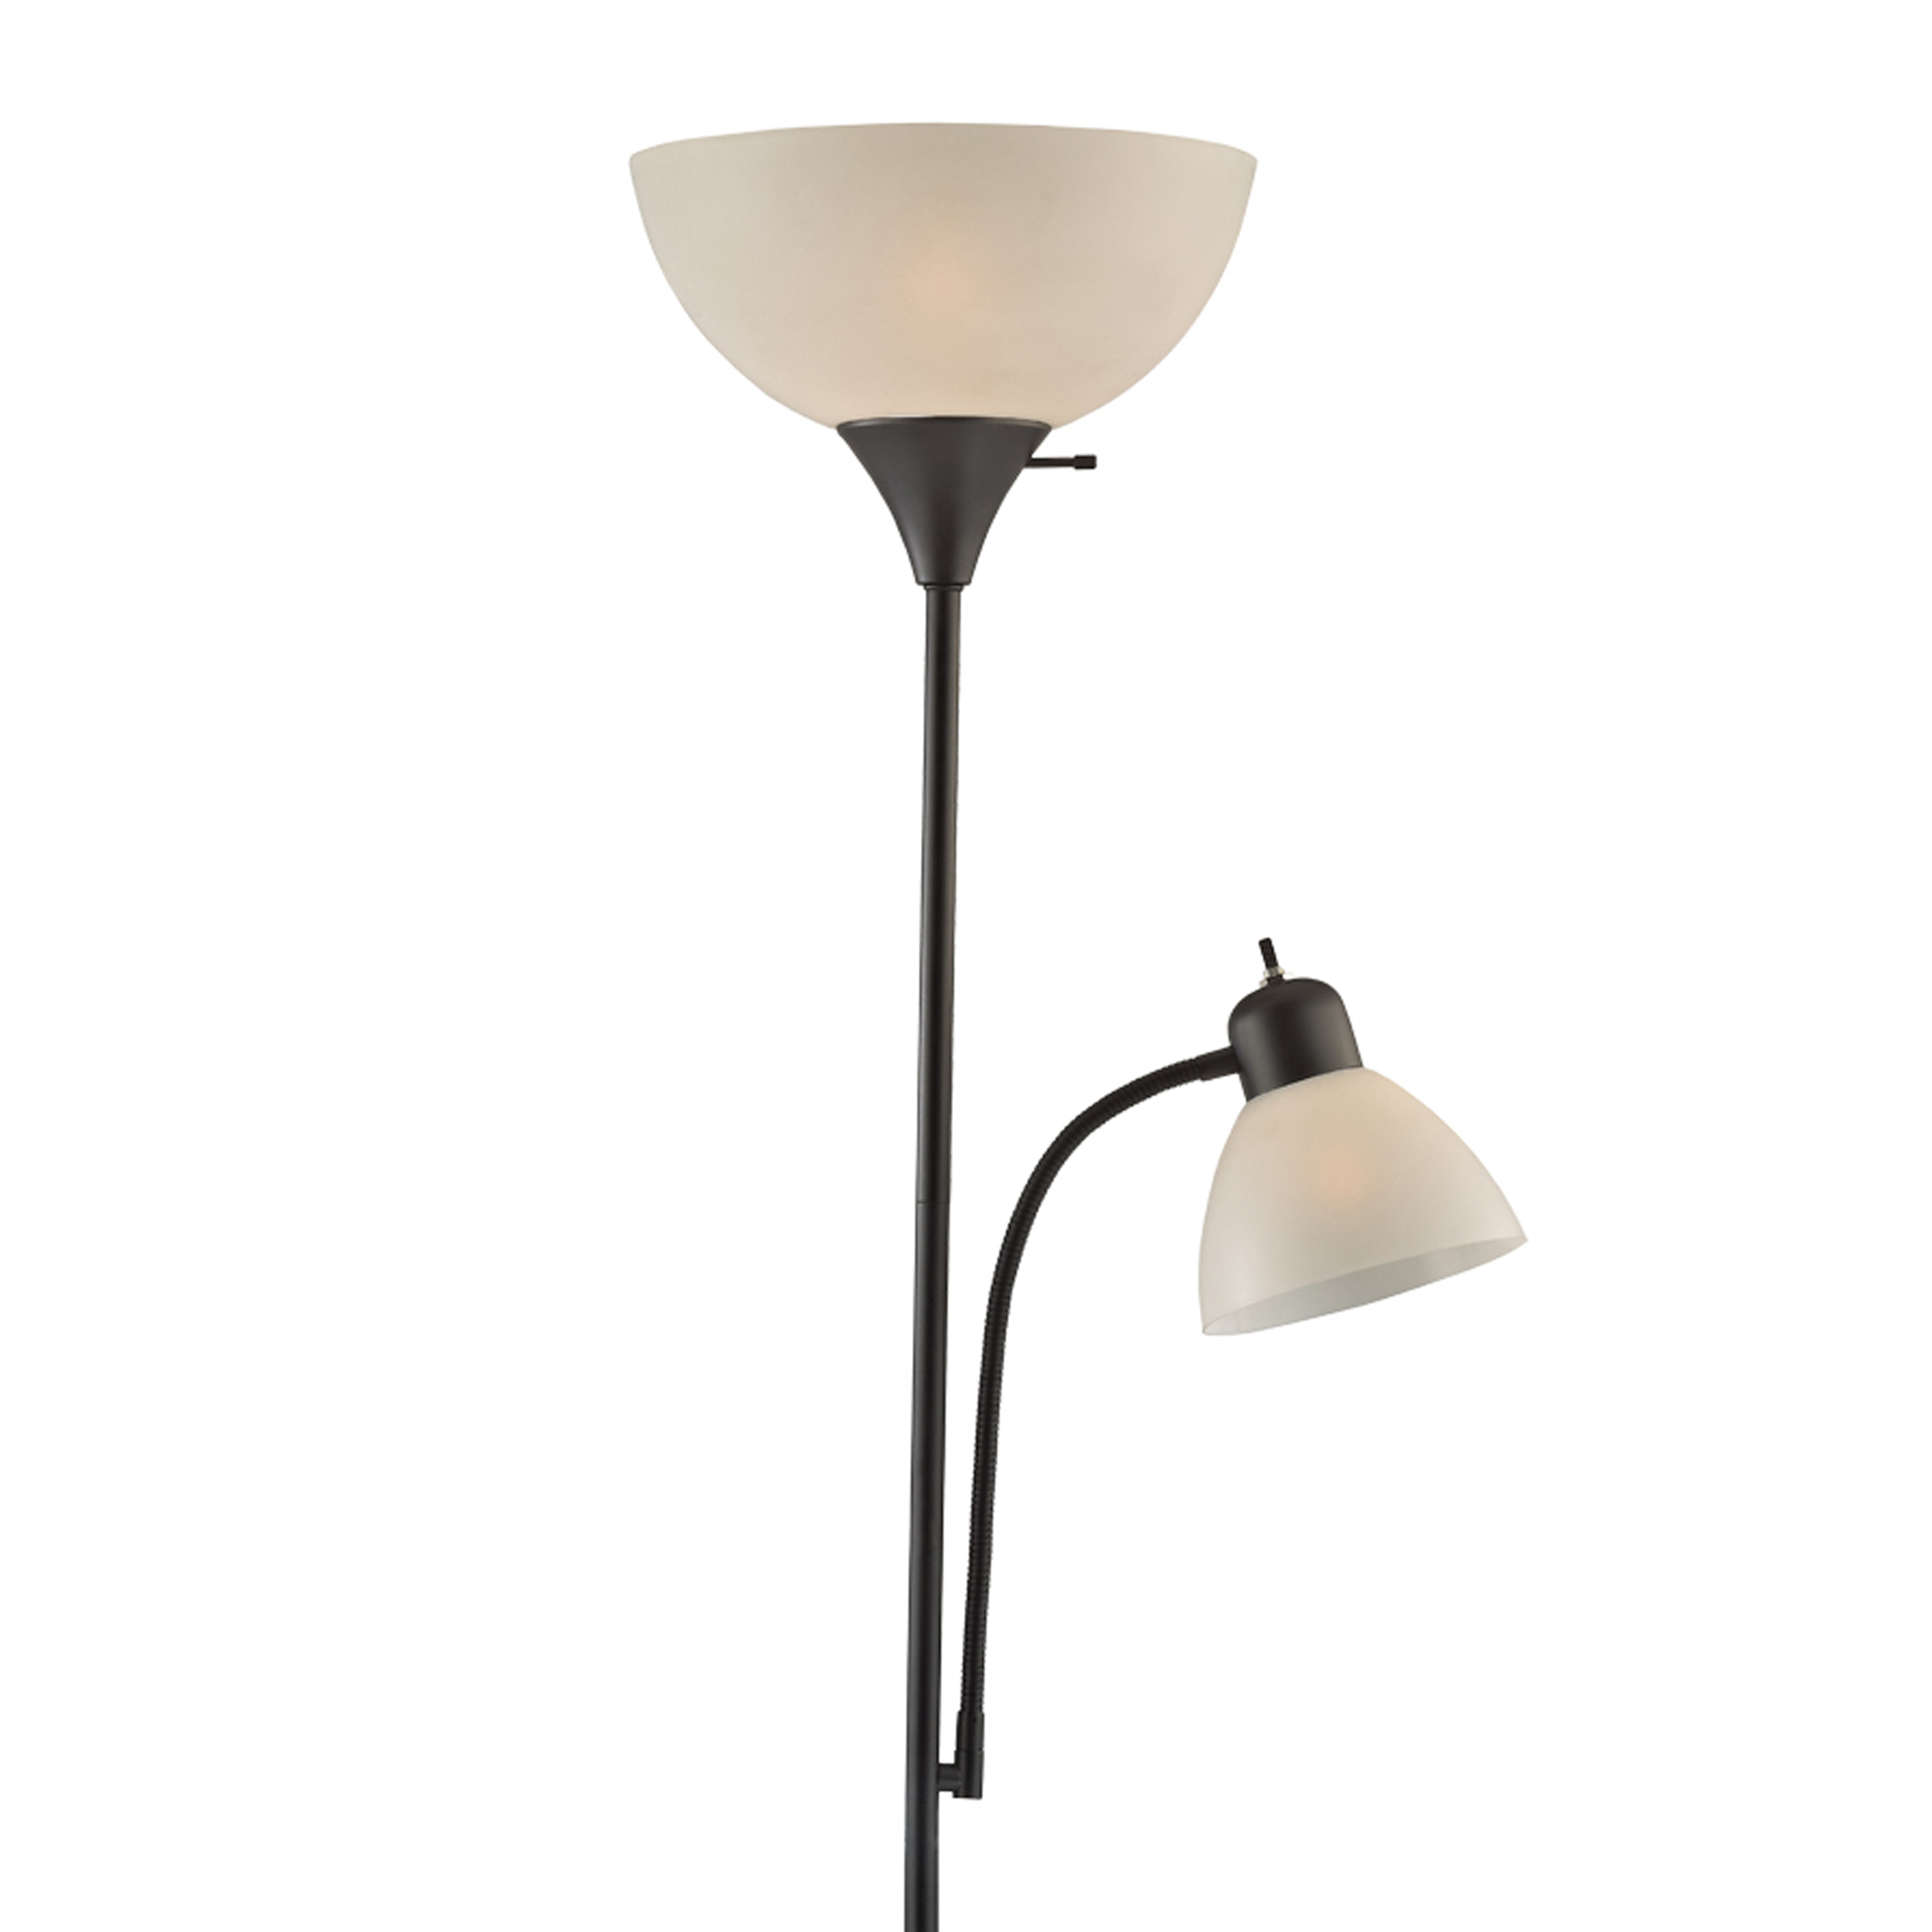 of inc floors style chloe tiffany shelley lamp floor picture light lamps lighting reading